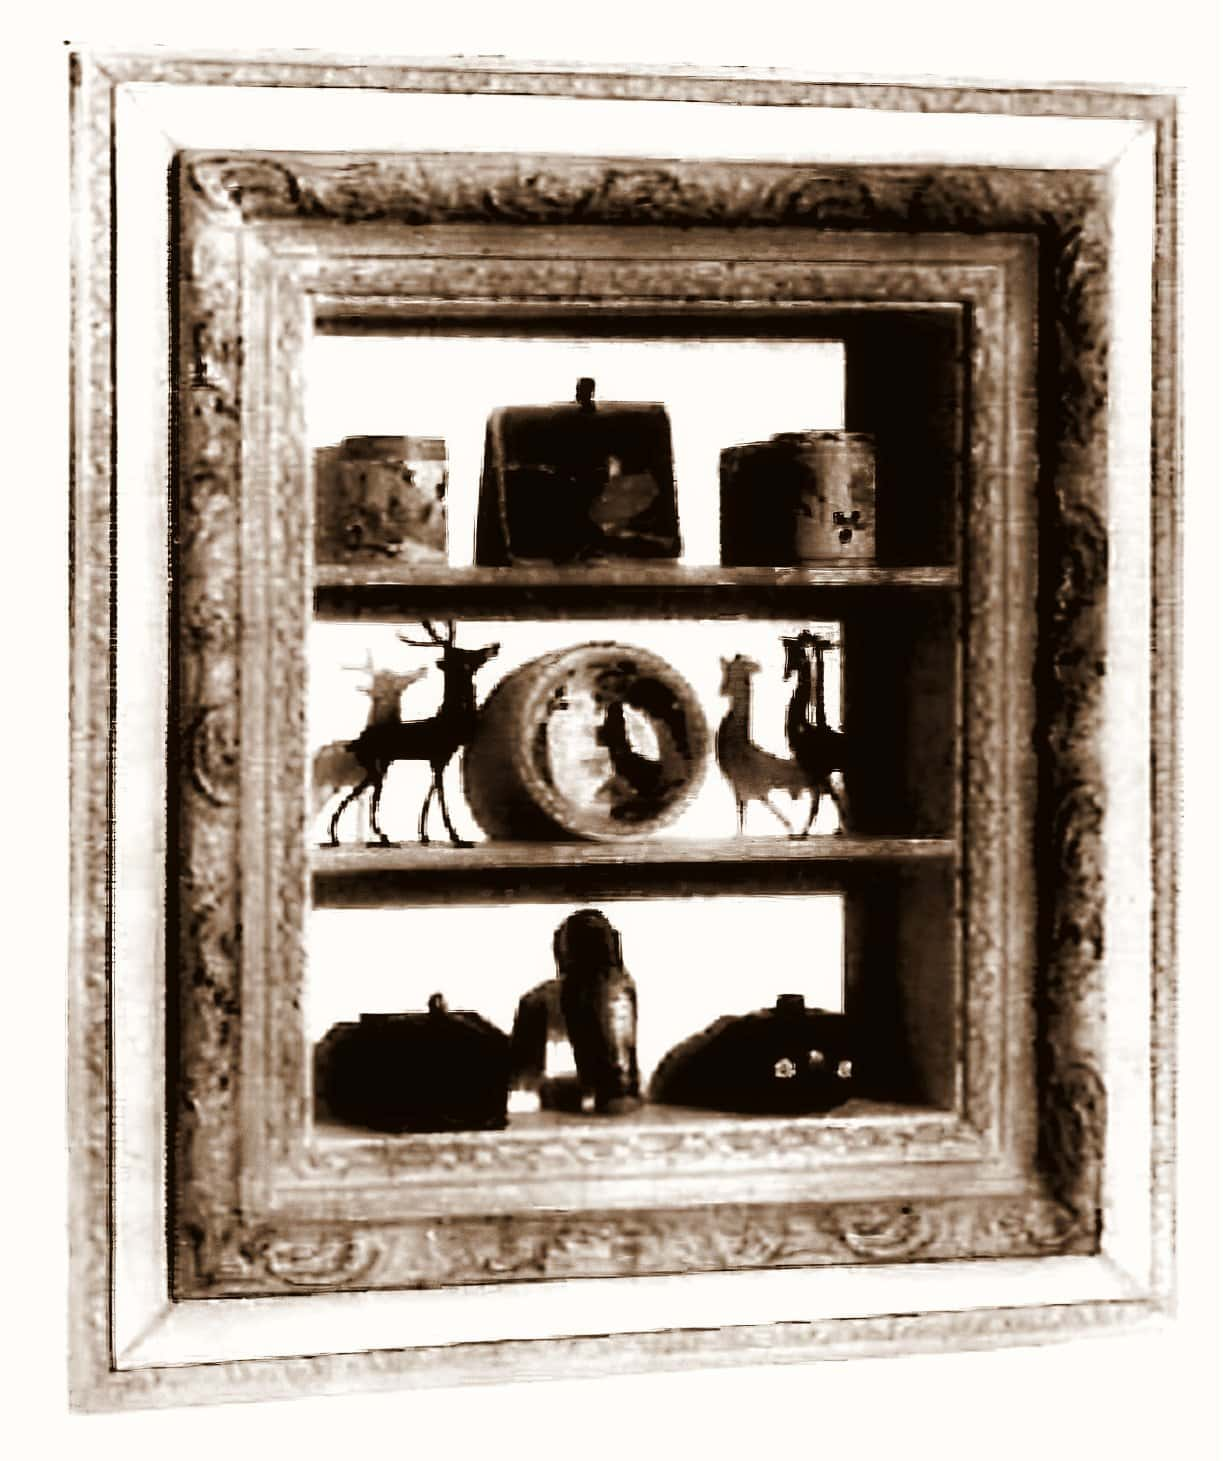 Painted shadowbox made with an old picture frame